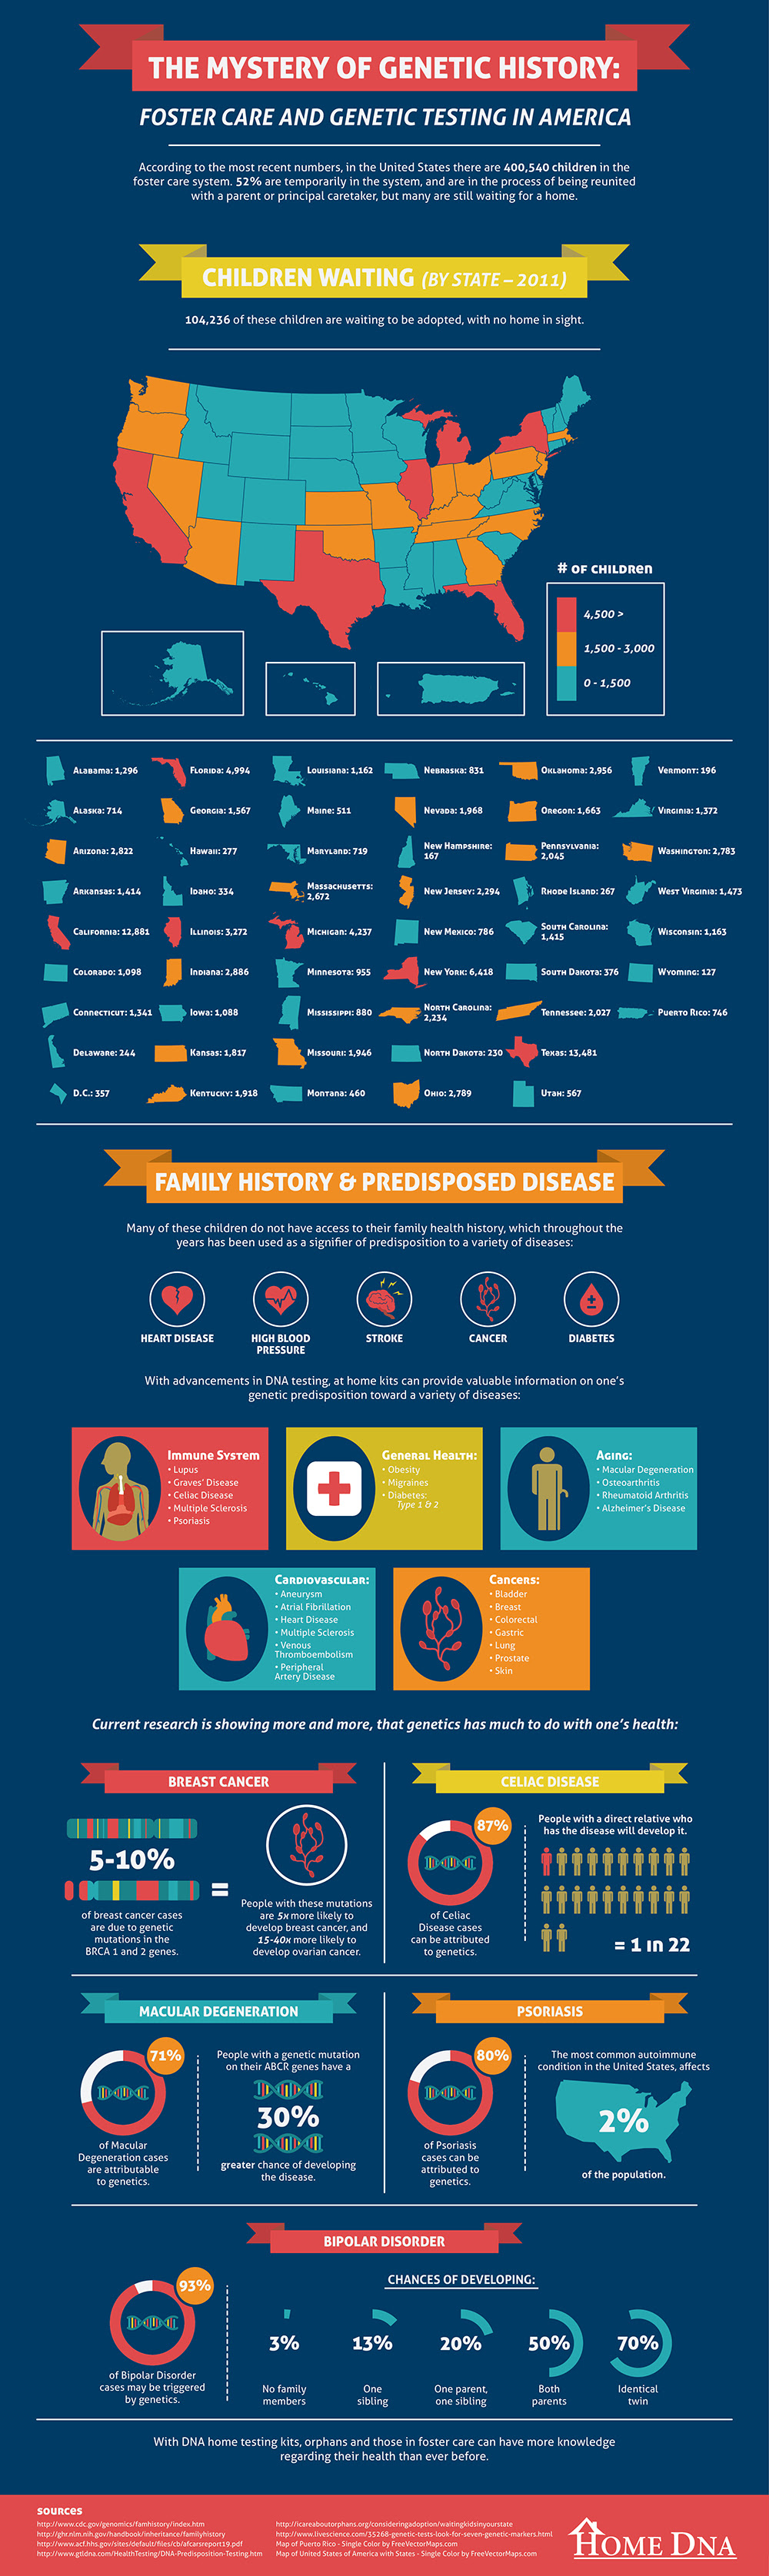 Infographic: The Mystery of Genetic History [Infographic]